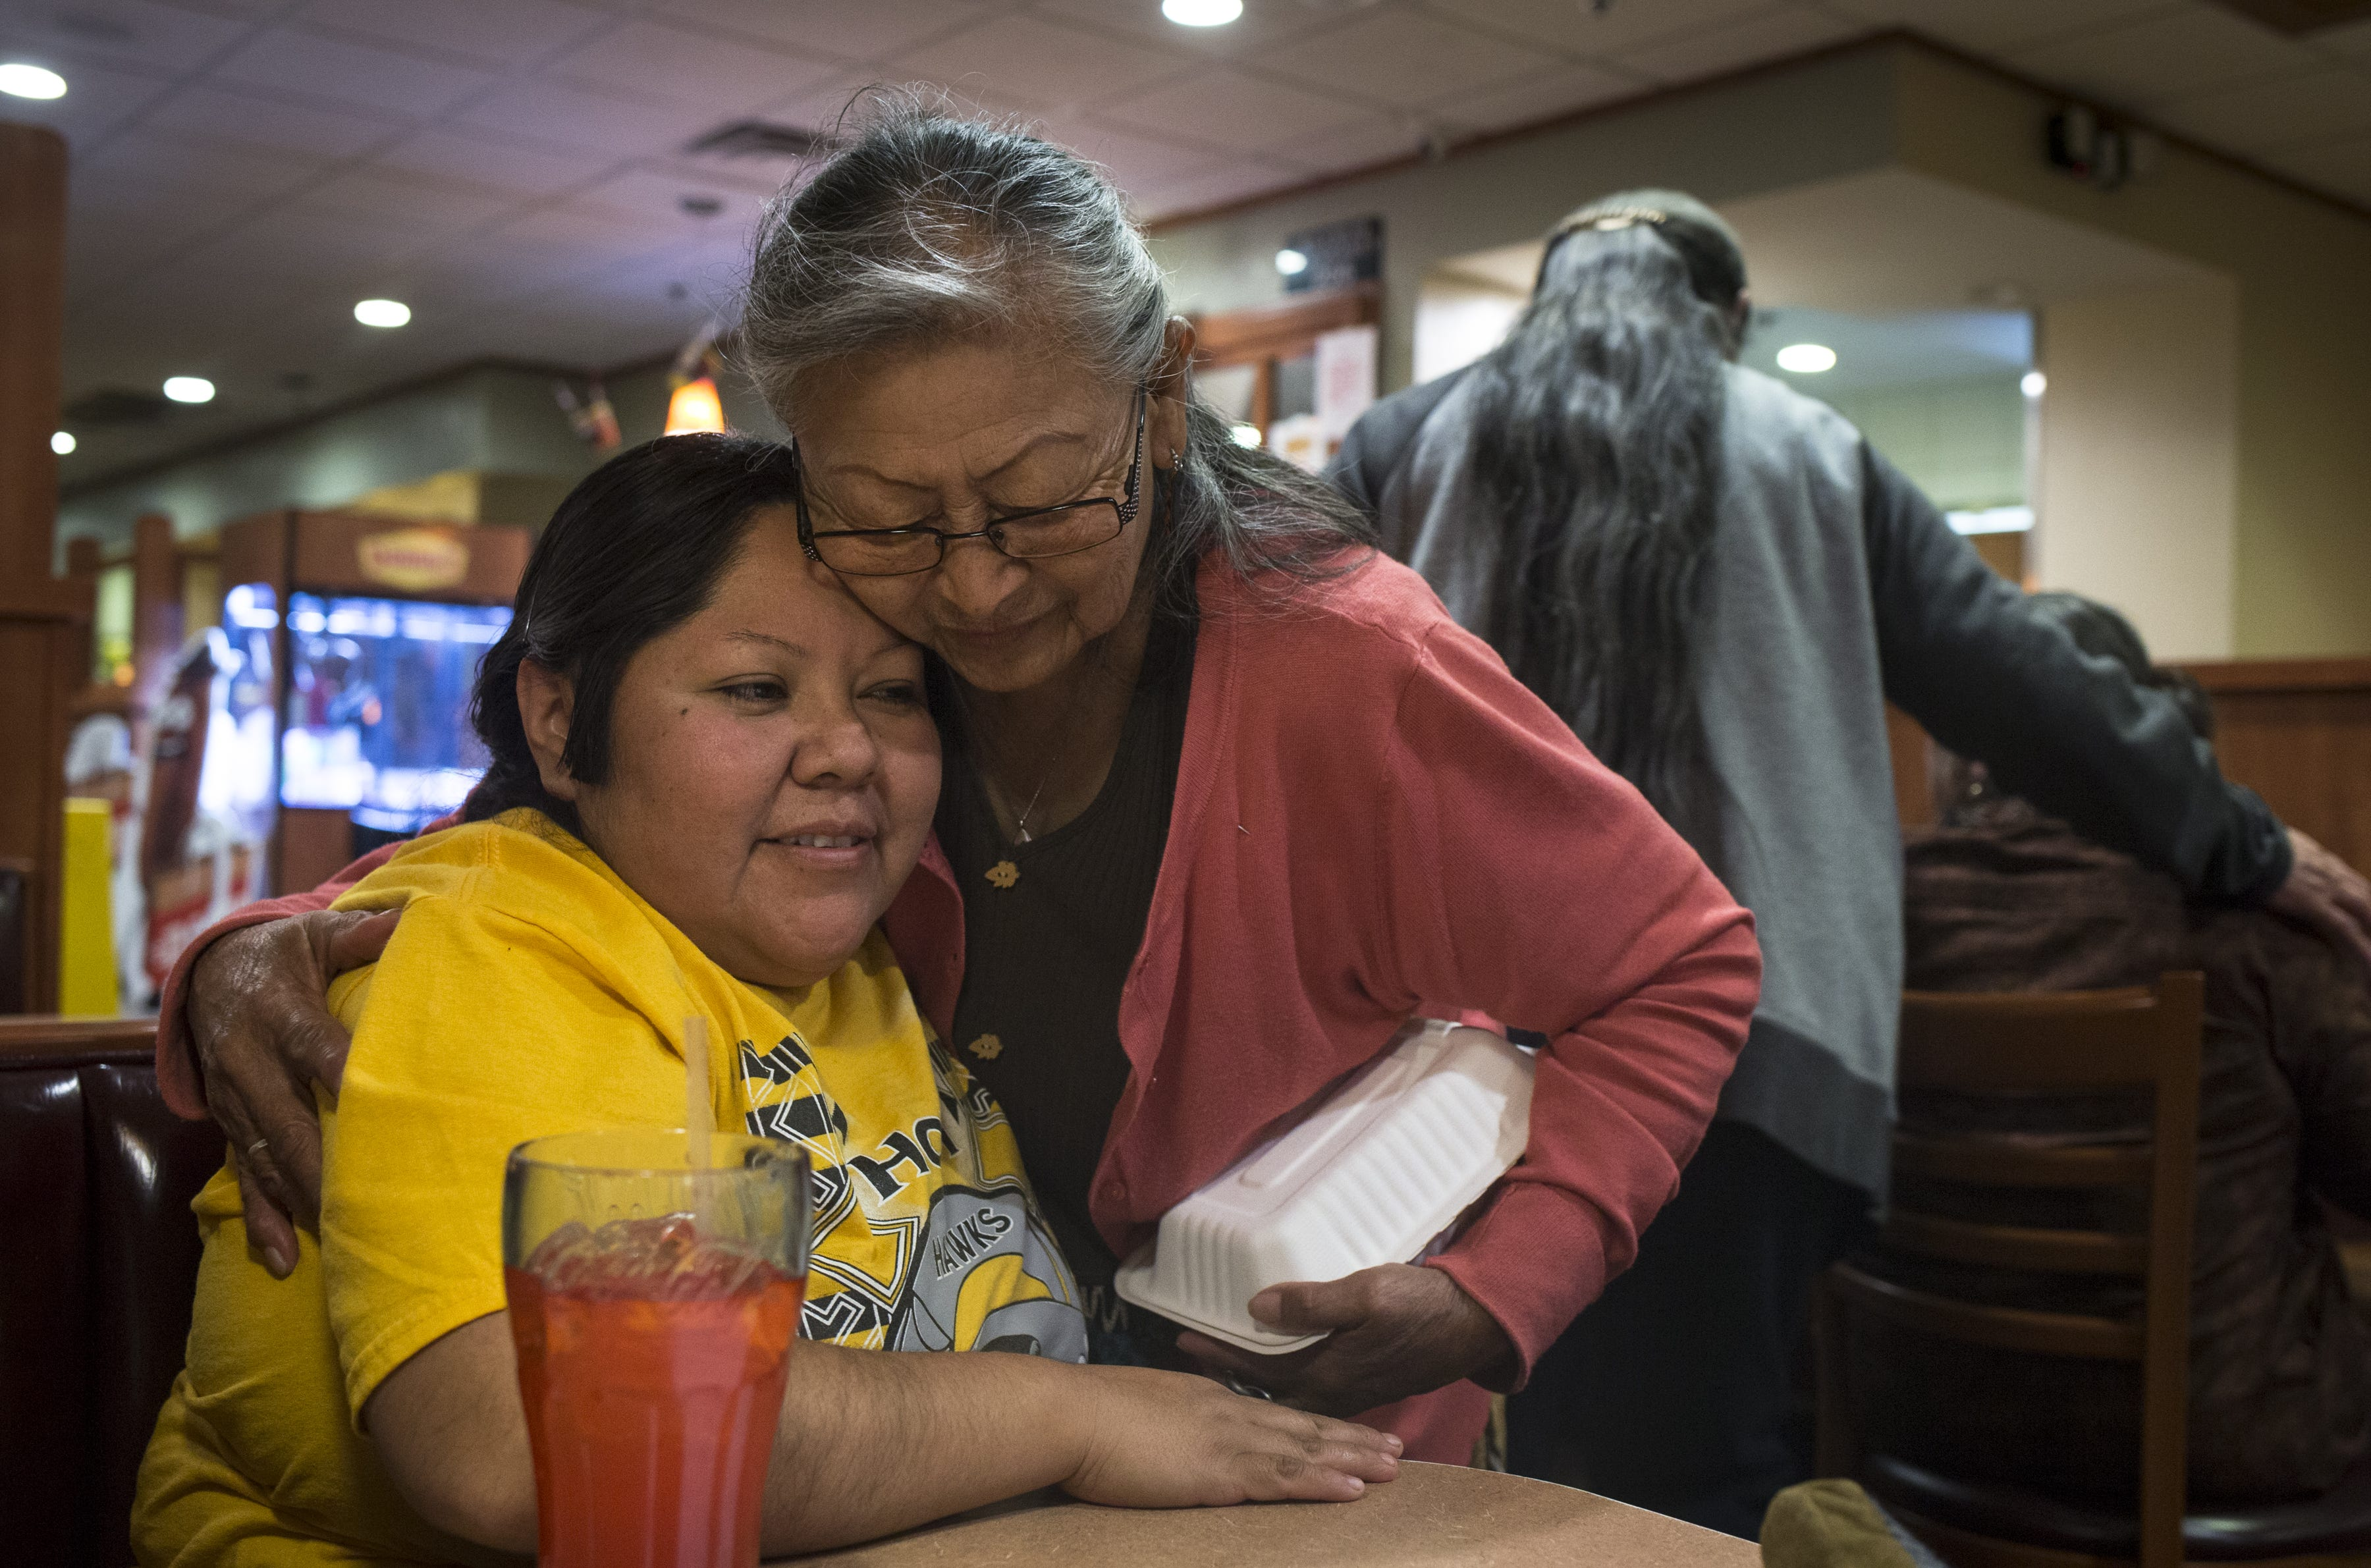 Kara is hugged by her auntie, Tresa Sufkie. Kara and Lester and their family had dinner at Denny's in Tuba City after the 10-day wedding ended on March 28, 2019.